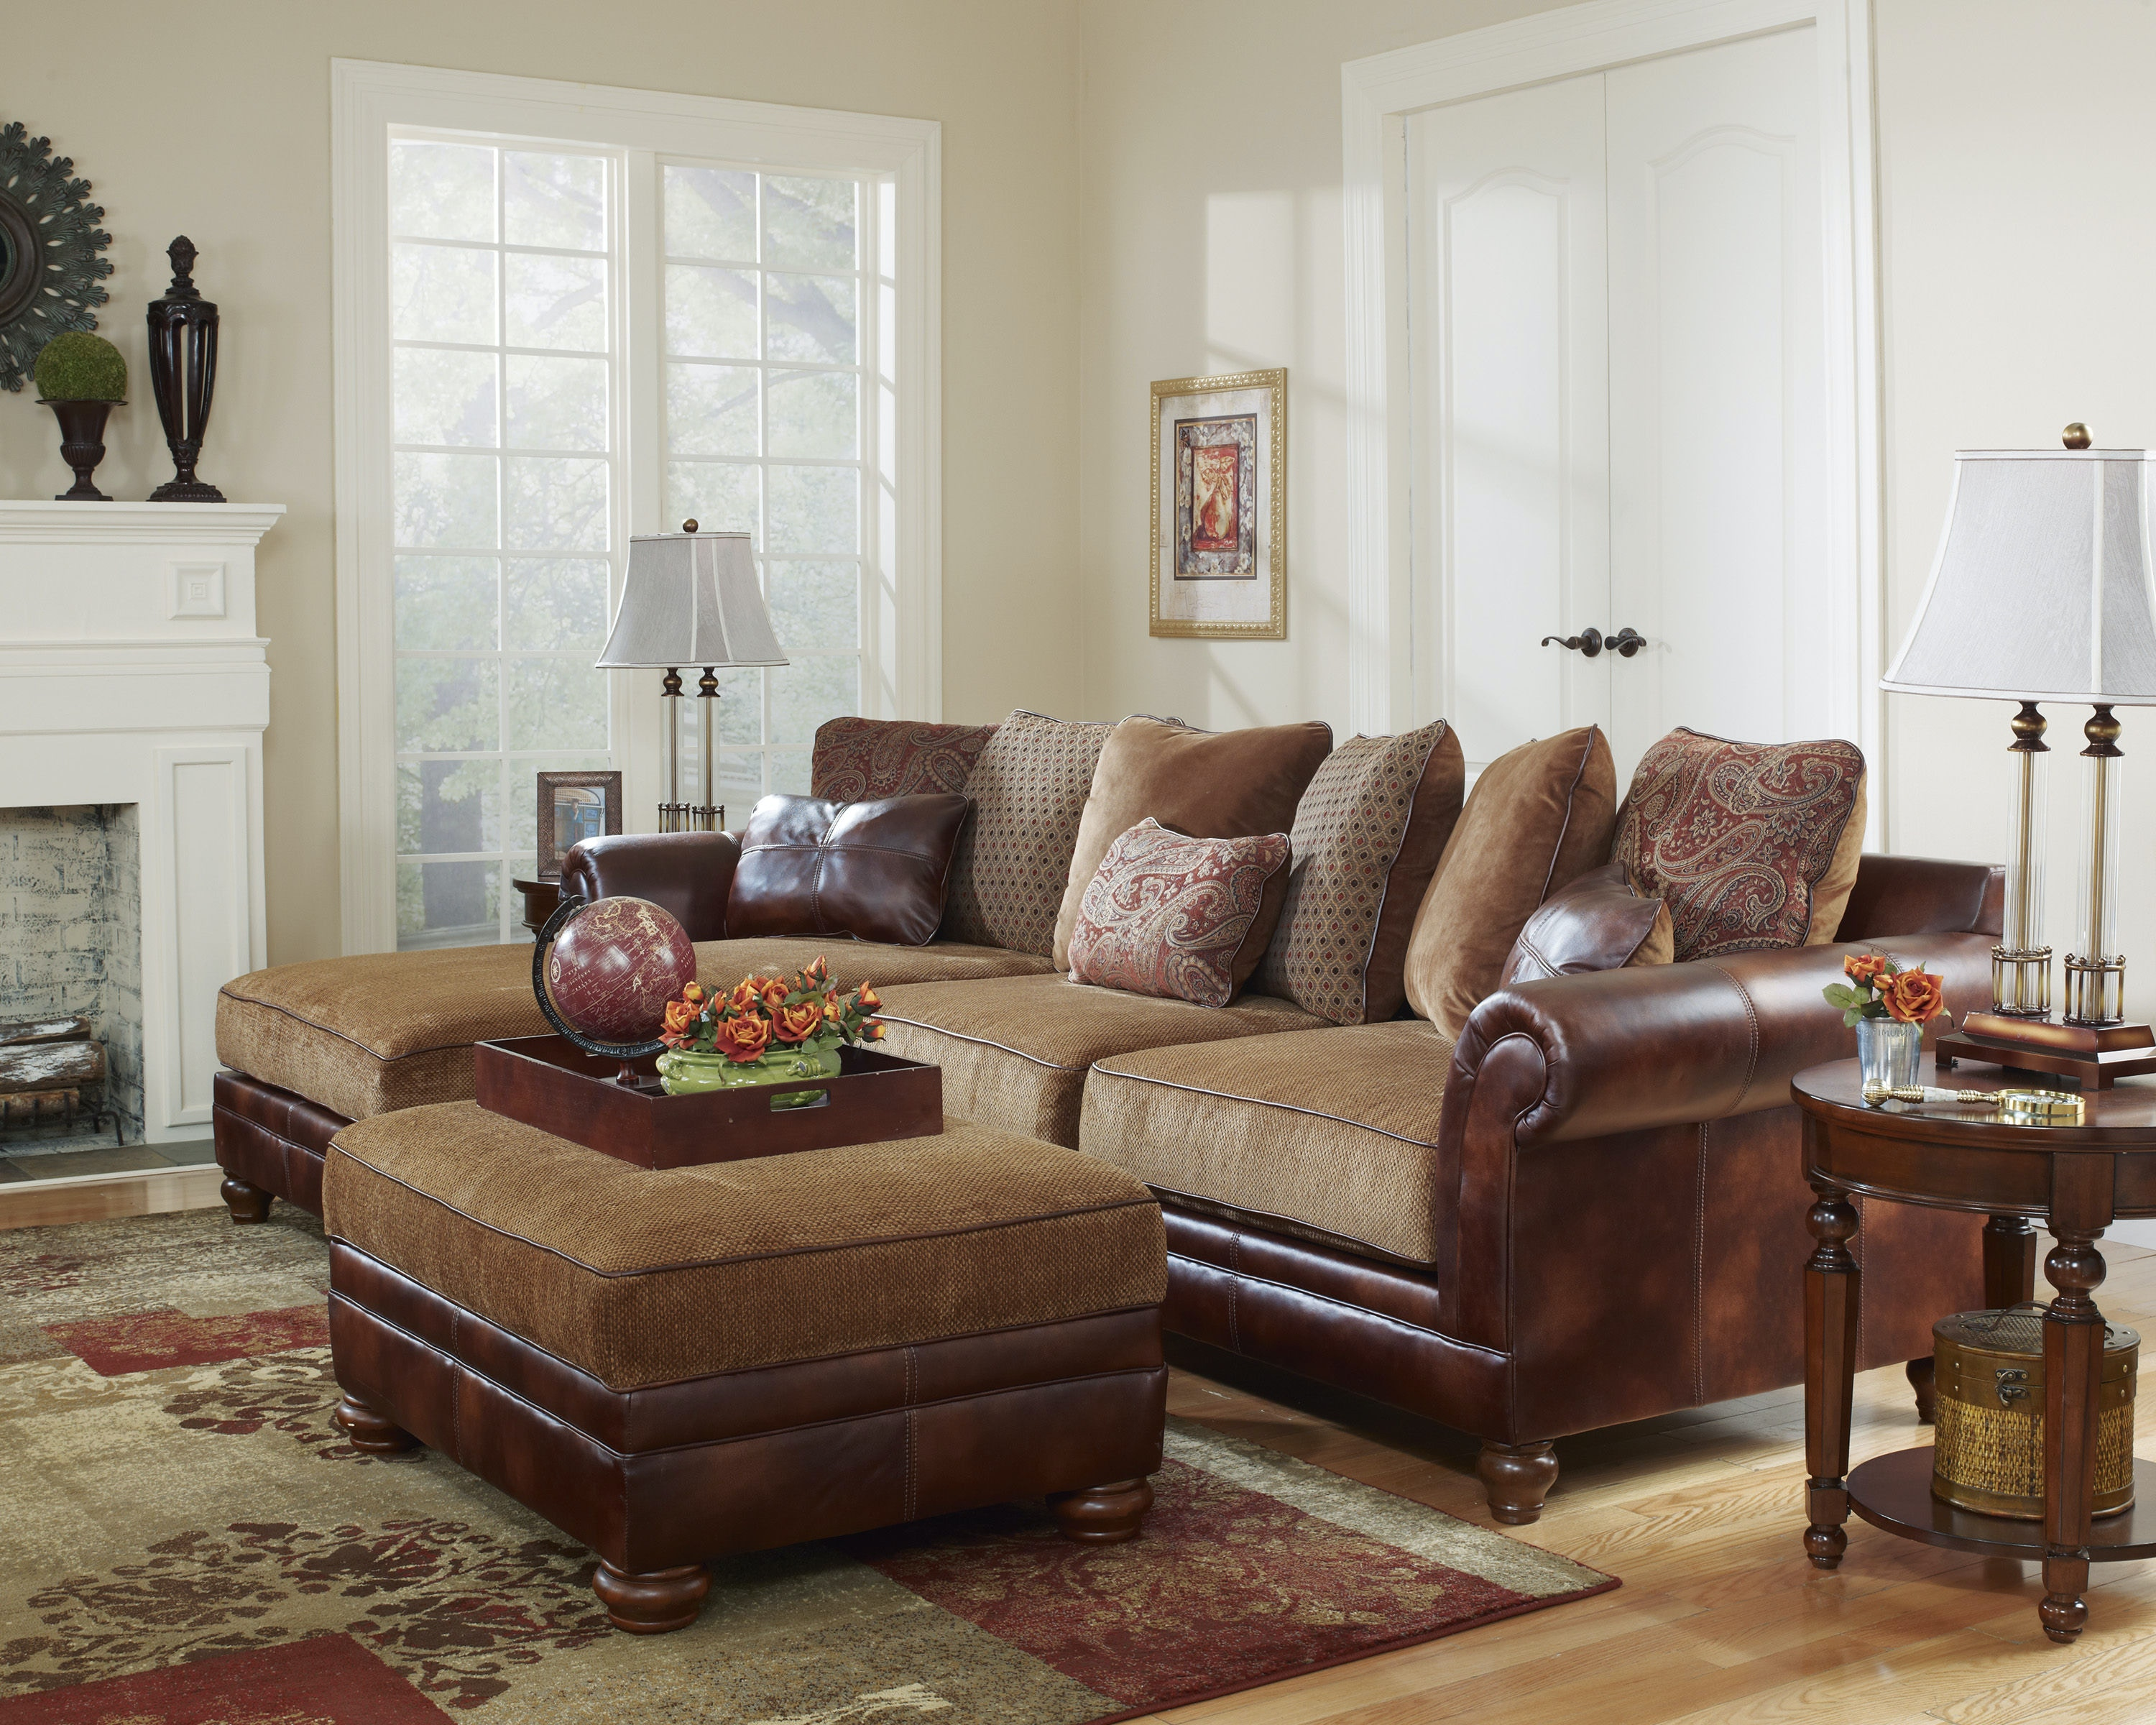 ashley furniture living room sectional 33100 - home decor